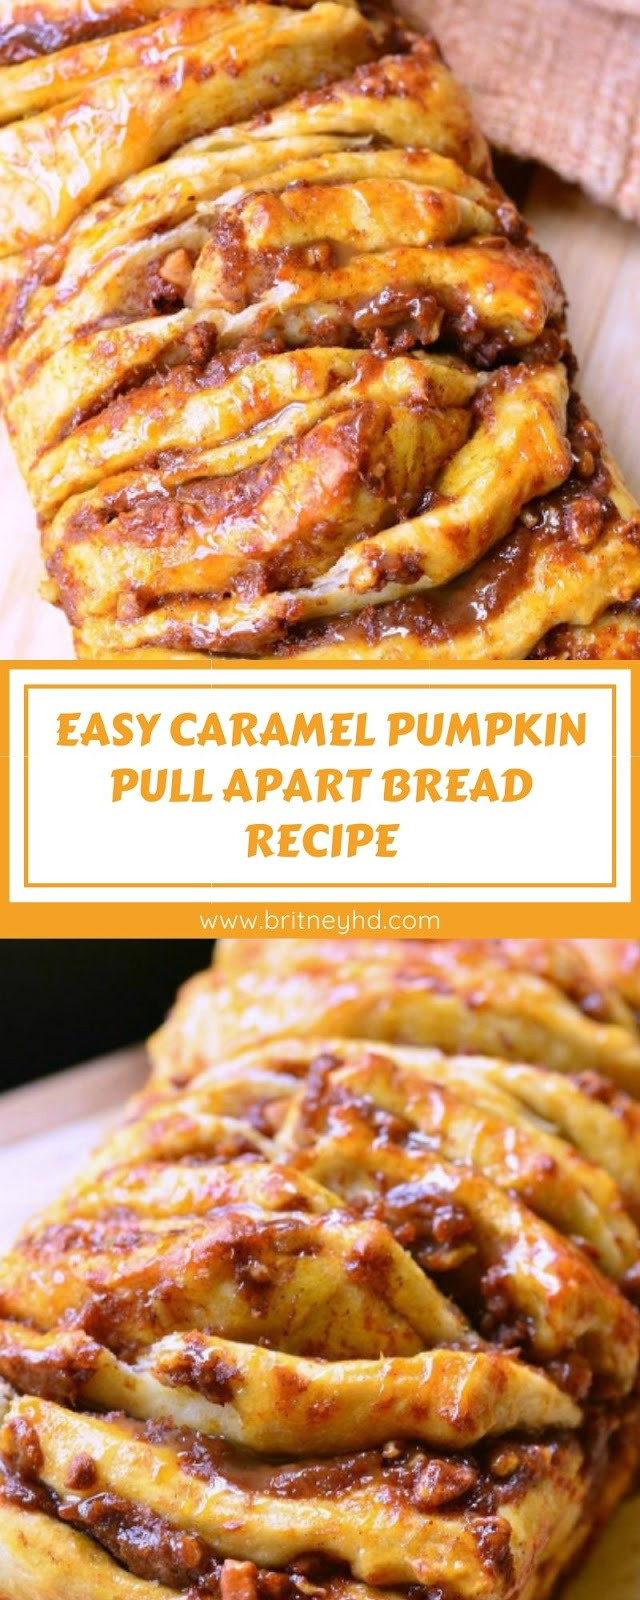 EASY CARAMEL PUMPKIN PULL APART BREAD RECIPE